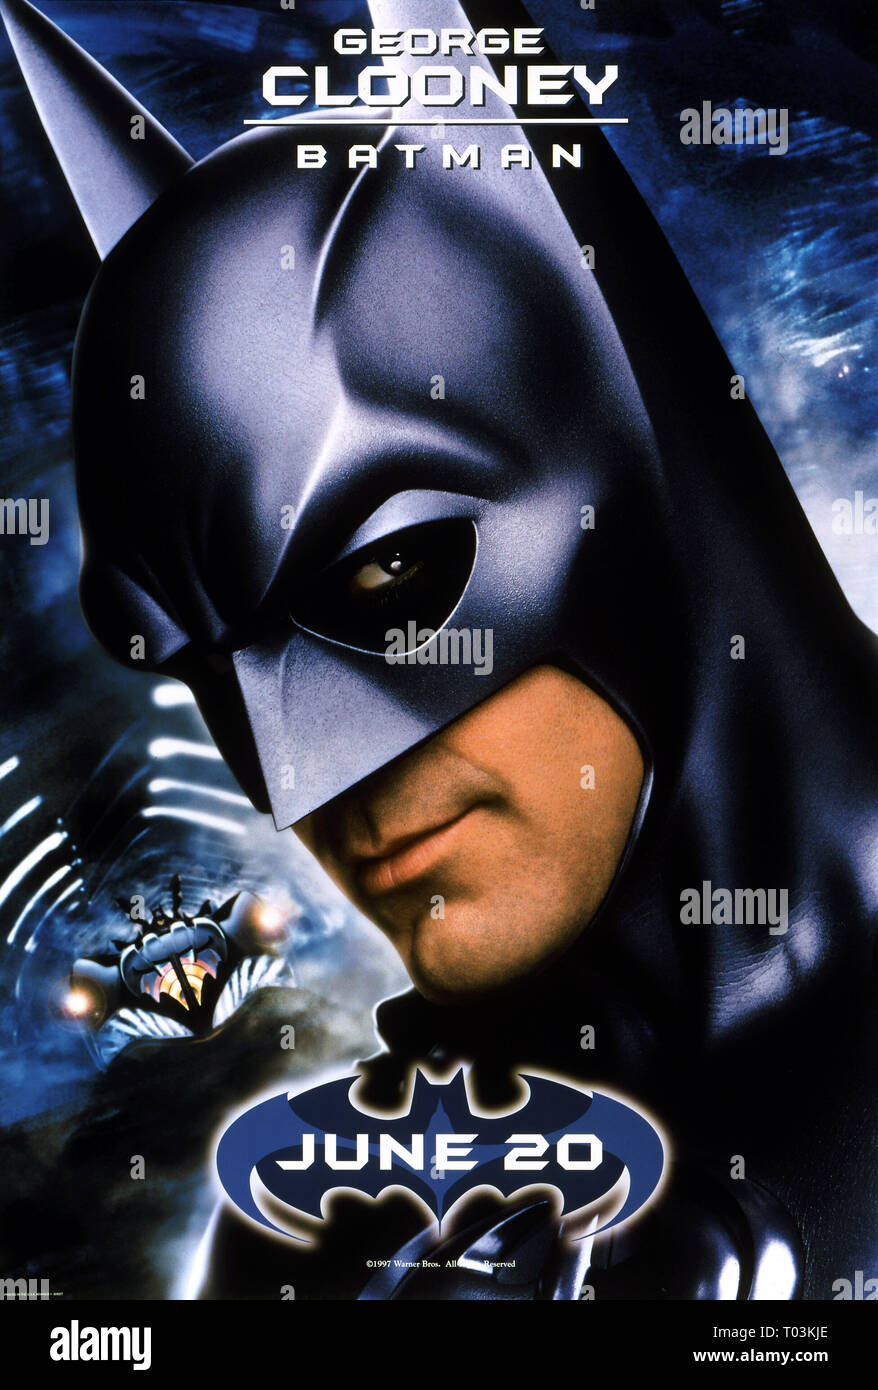 George Clooney Poster Batman And Robin 1997 Stock Photo Alamy